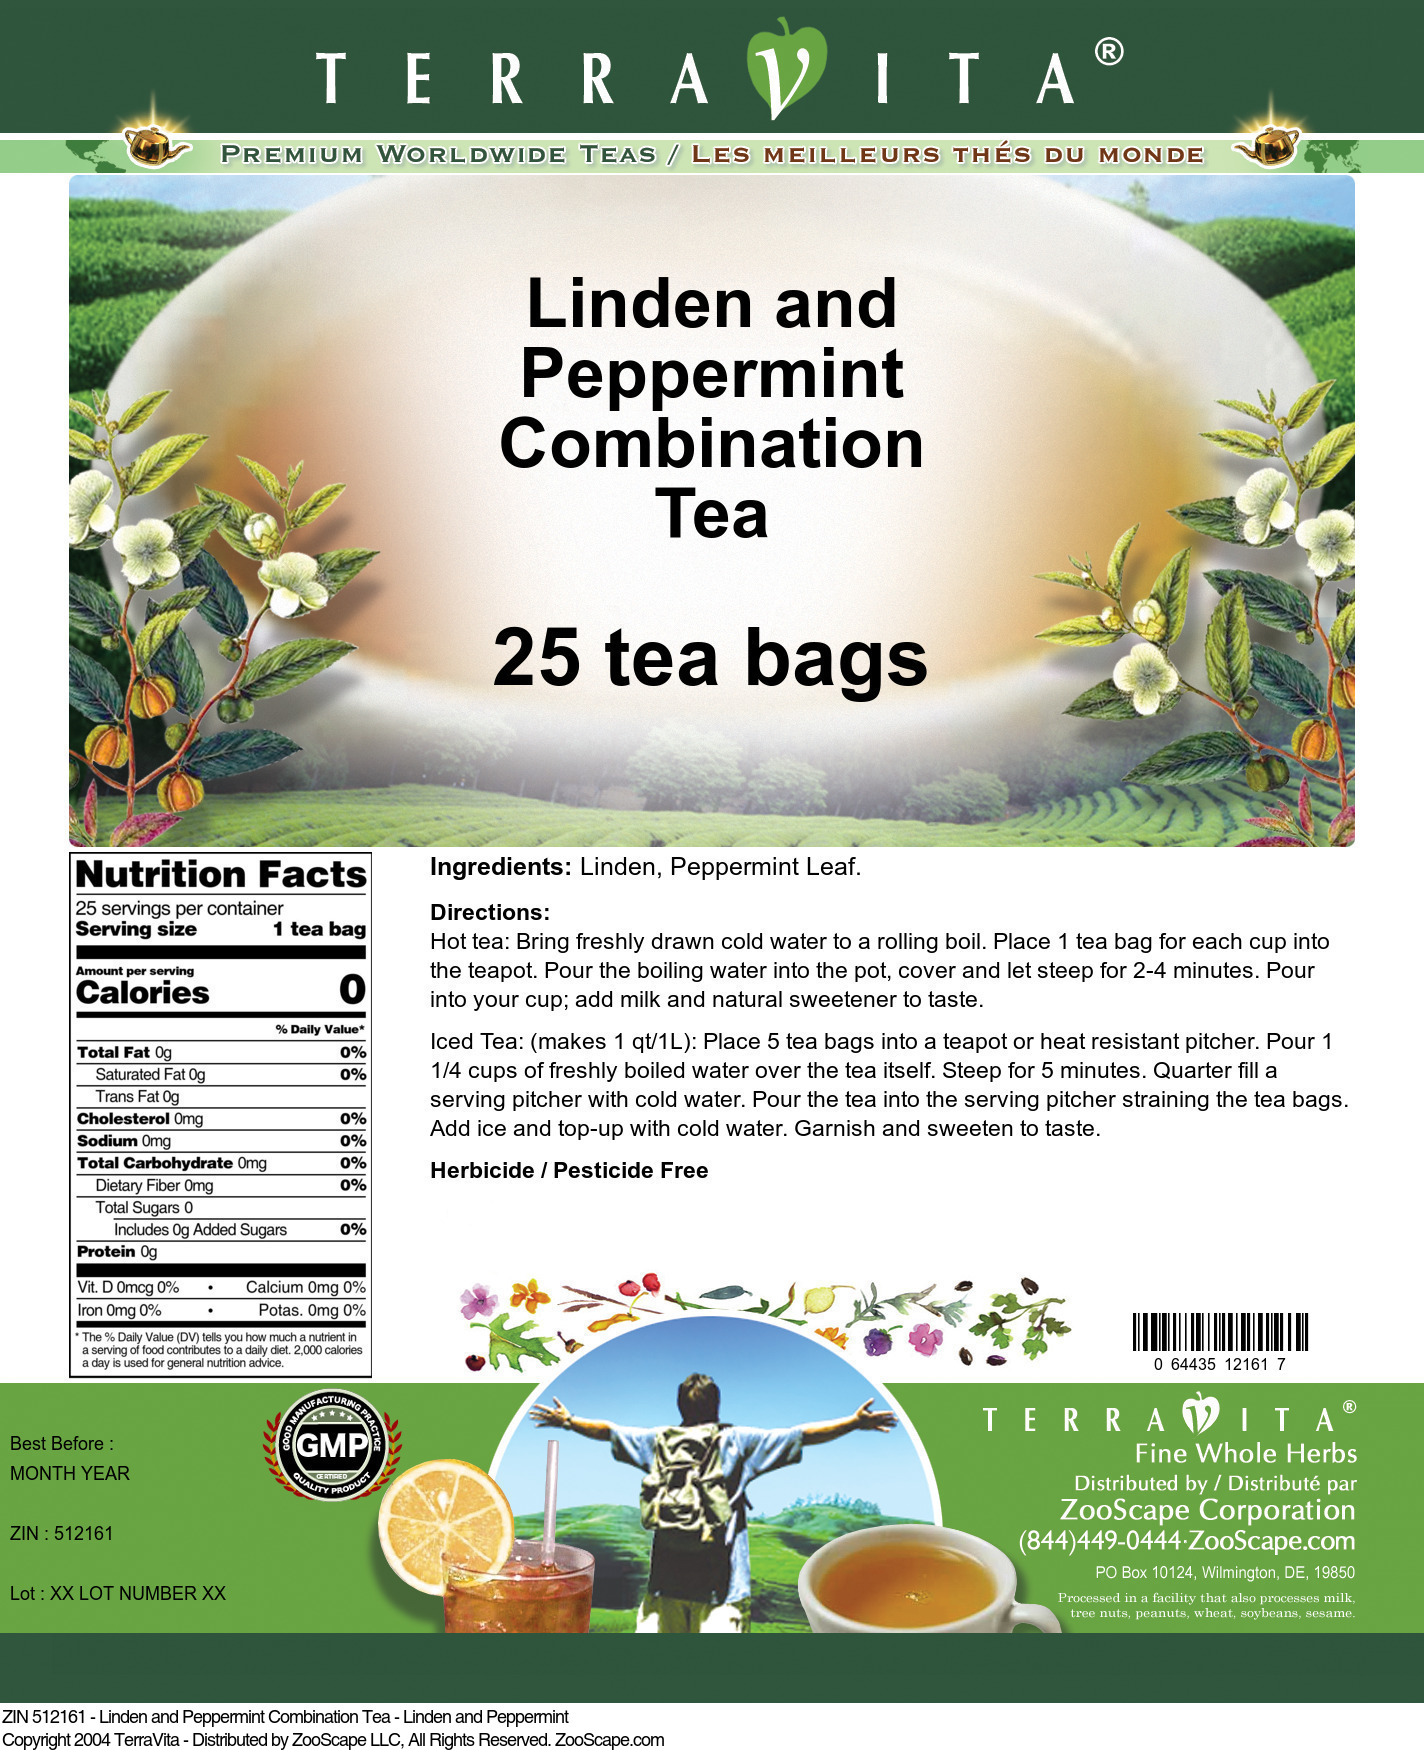 Linden and Peppermint Combination Tea - Linden and Peppermint